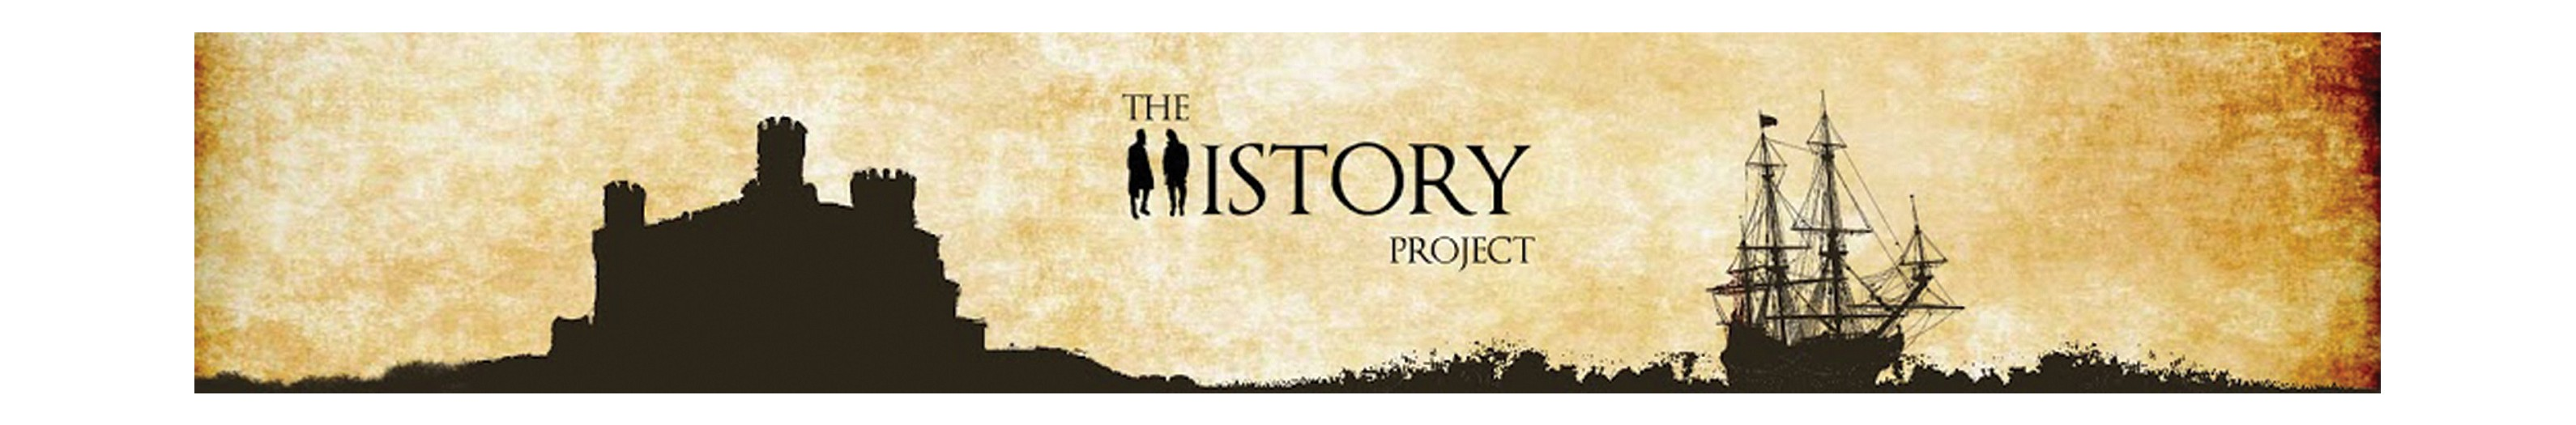 The History Project - March